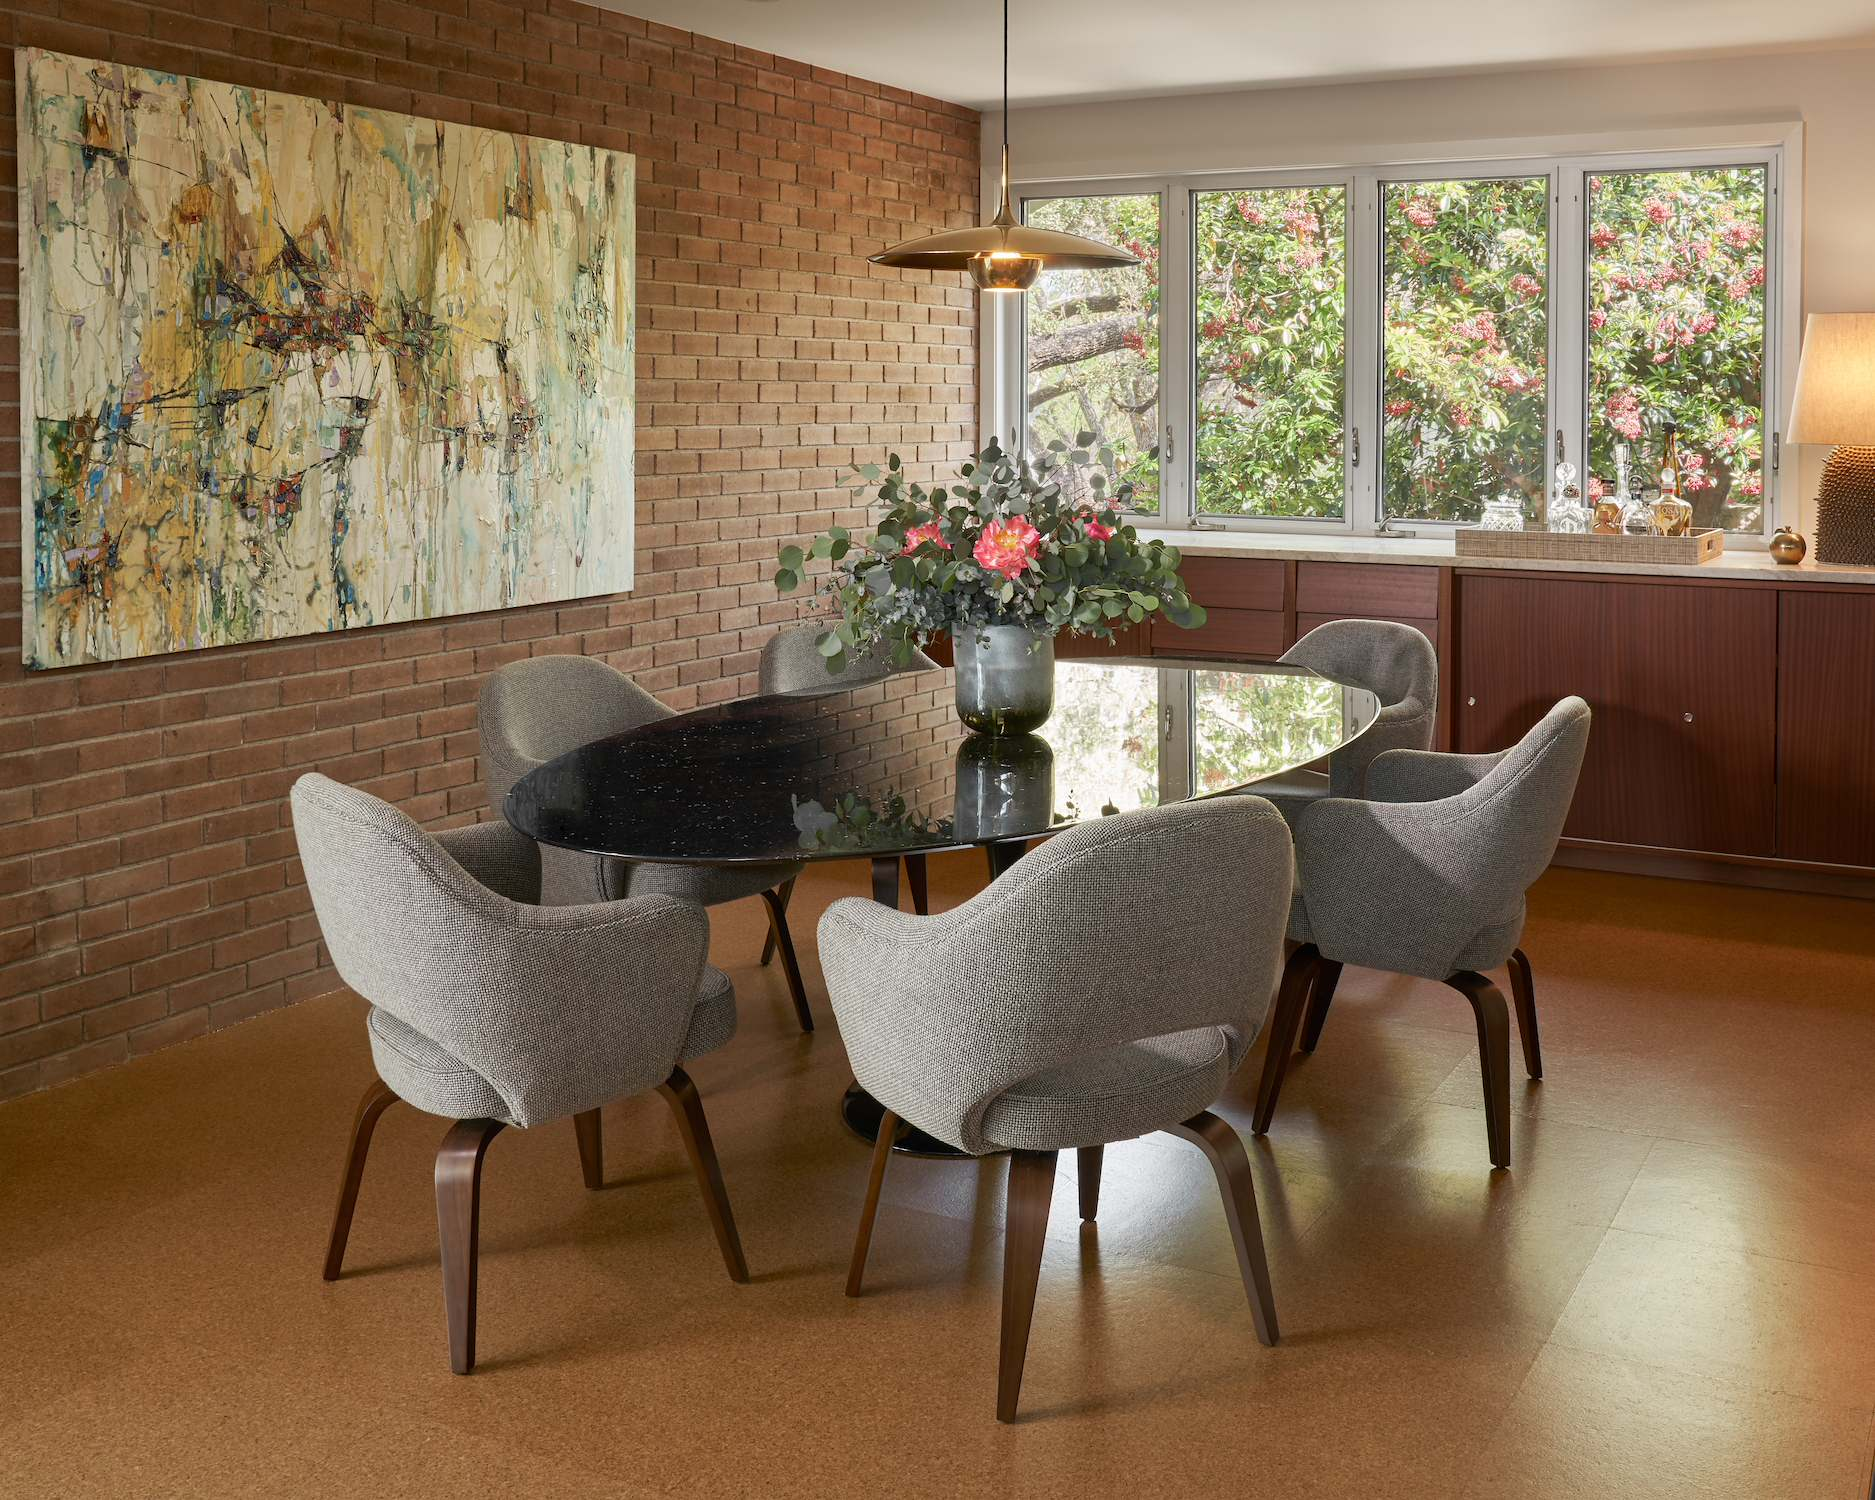 75 Beautiful Mid Century Modern Dining Room Pictures Ideas February 2021 Houzz